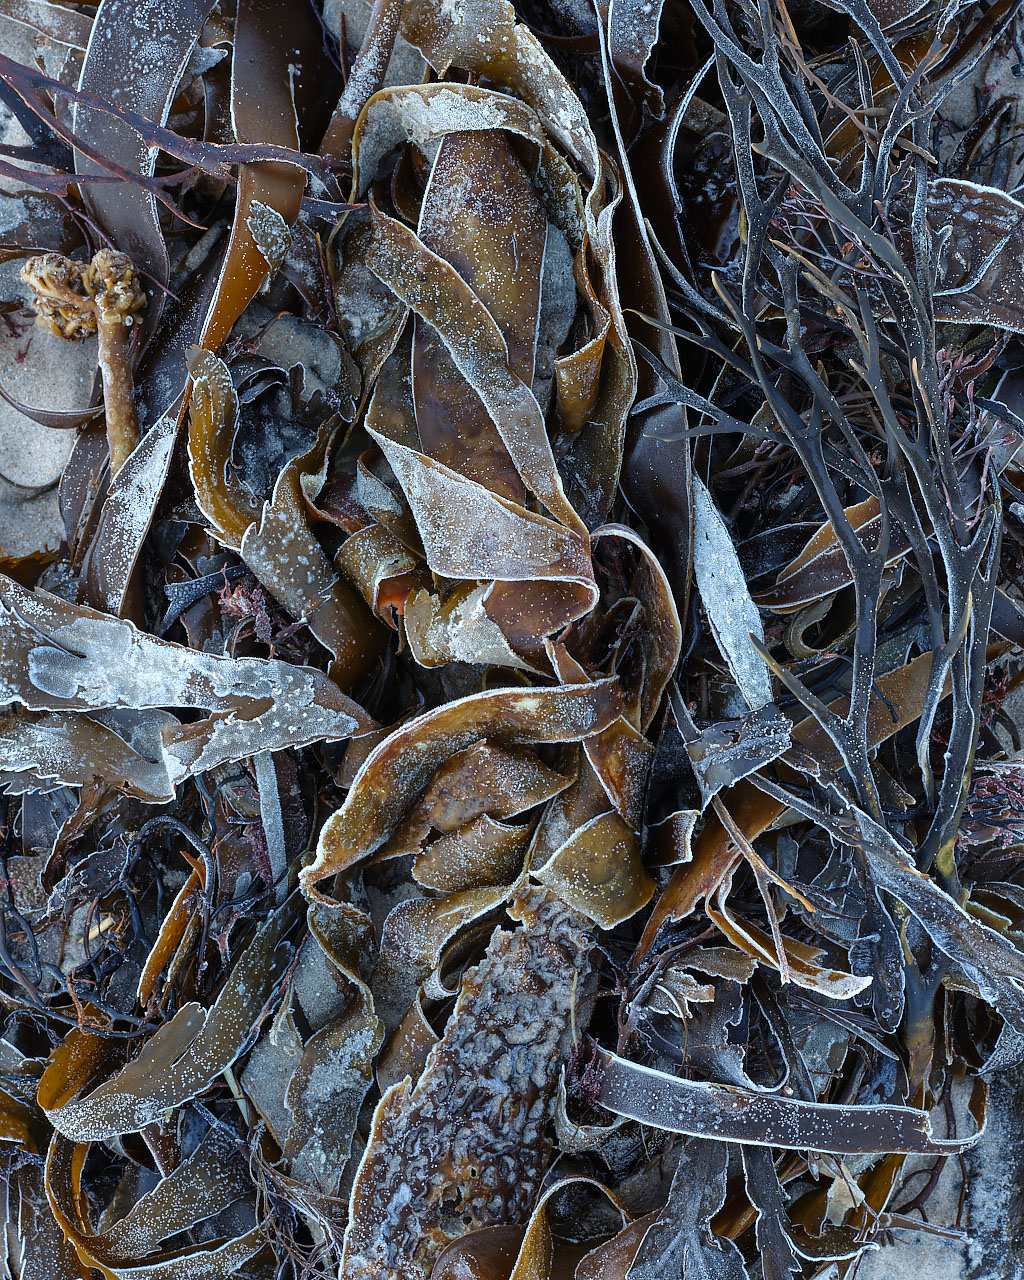 Frosted Seaweed